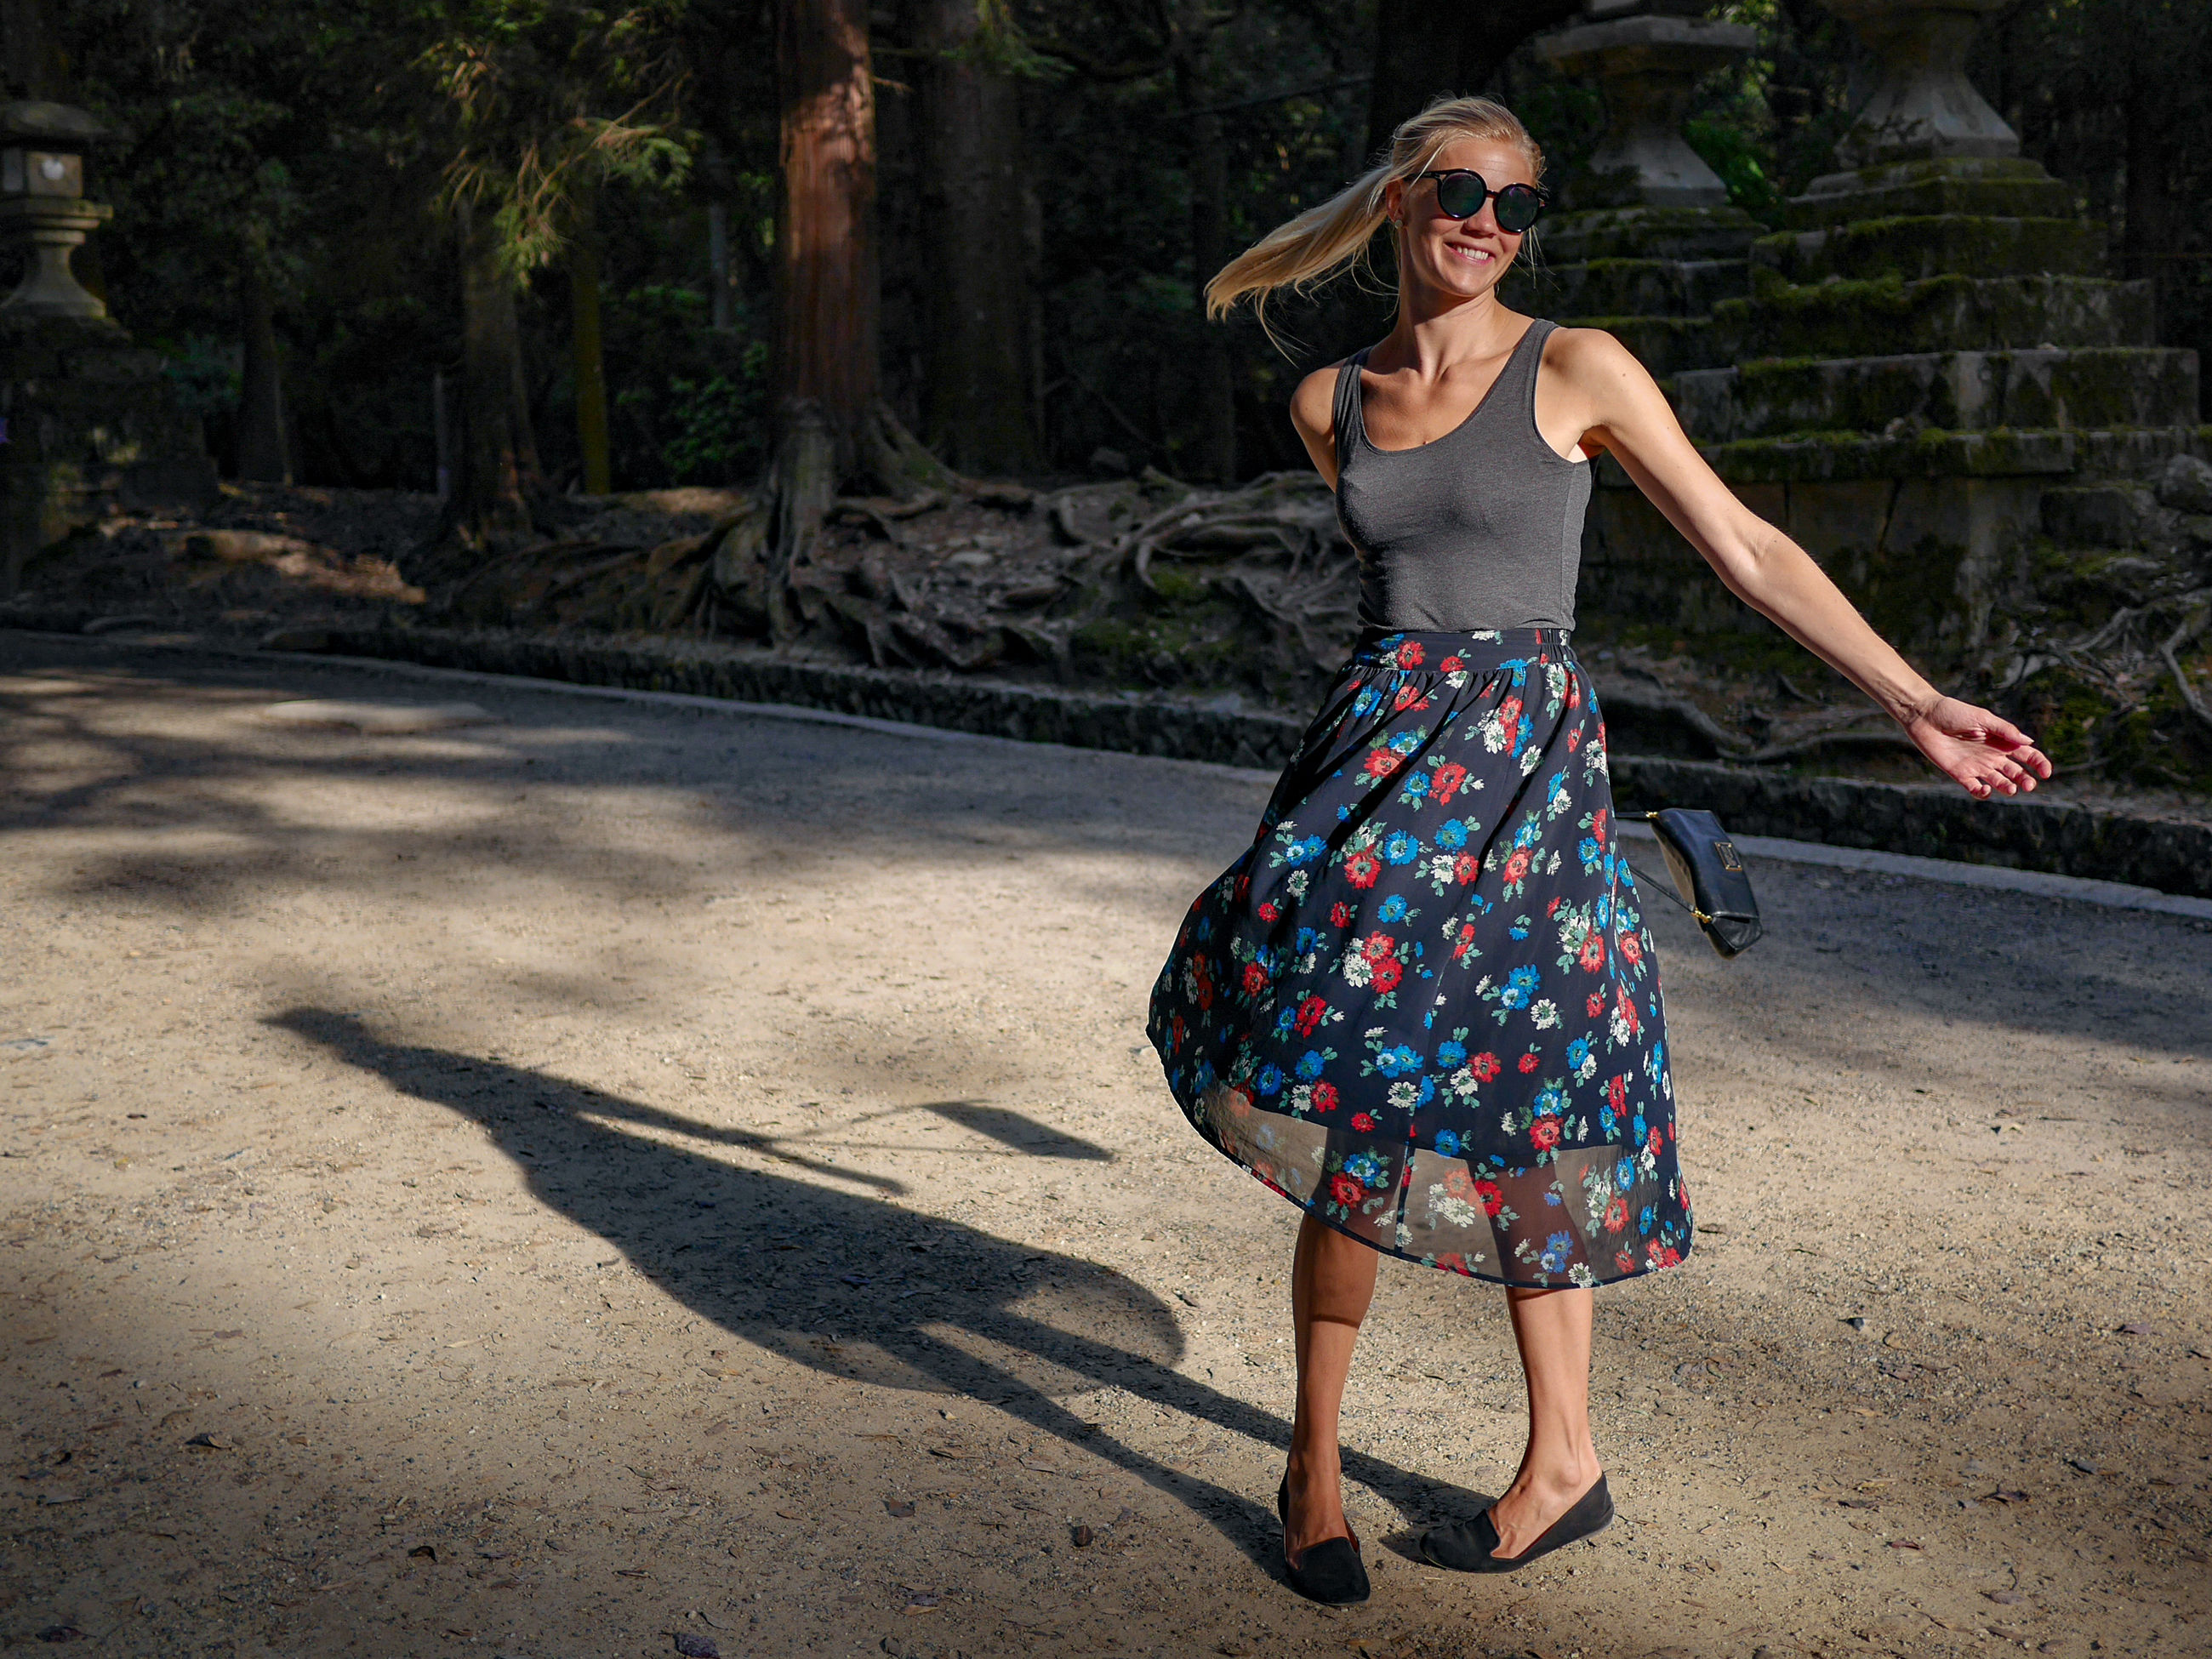 sunglasses, dress, full length, fashion, only women, smiling, adult, one person, looking at camera, portrait, beautiful woman, one woman only, sunlight, shadow, adults only, women, fashion model, happiness, standing, outdoors, beauty, day, people, tree, young adult, one young woman only, young women